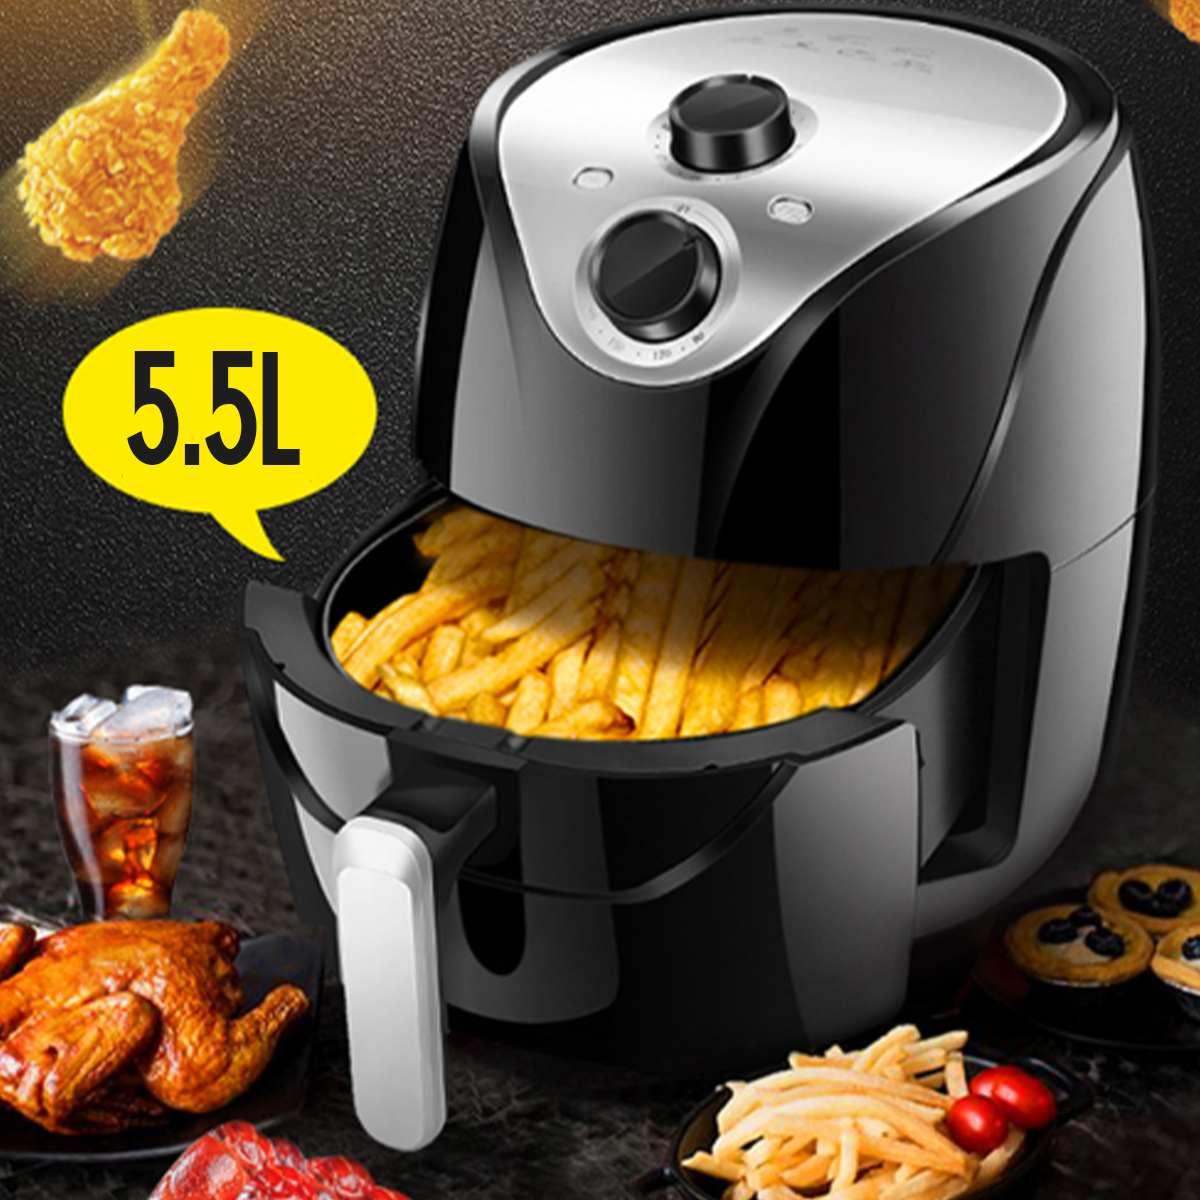 1500W 220V 5.5L Air Fryer Electric Deep Fryer 360° High-speed Hot Air Circulation Multi-function Cooker Oven Low Fat Health Pan